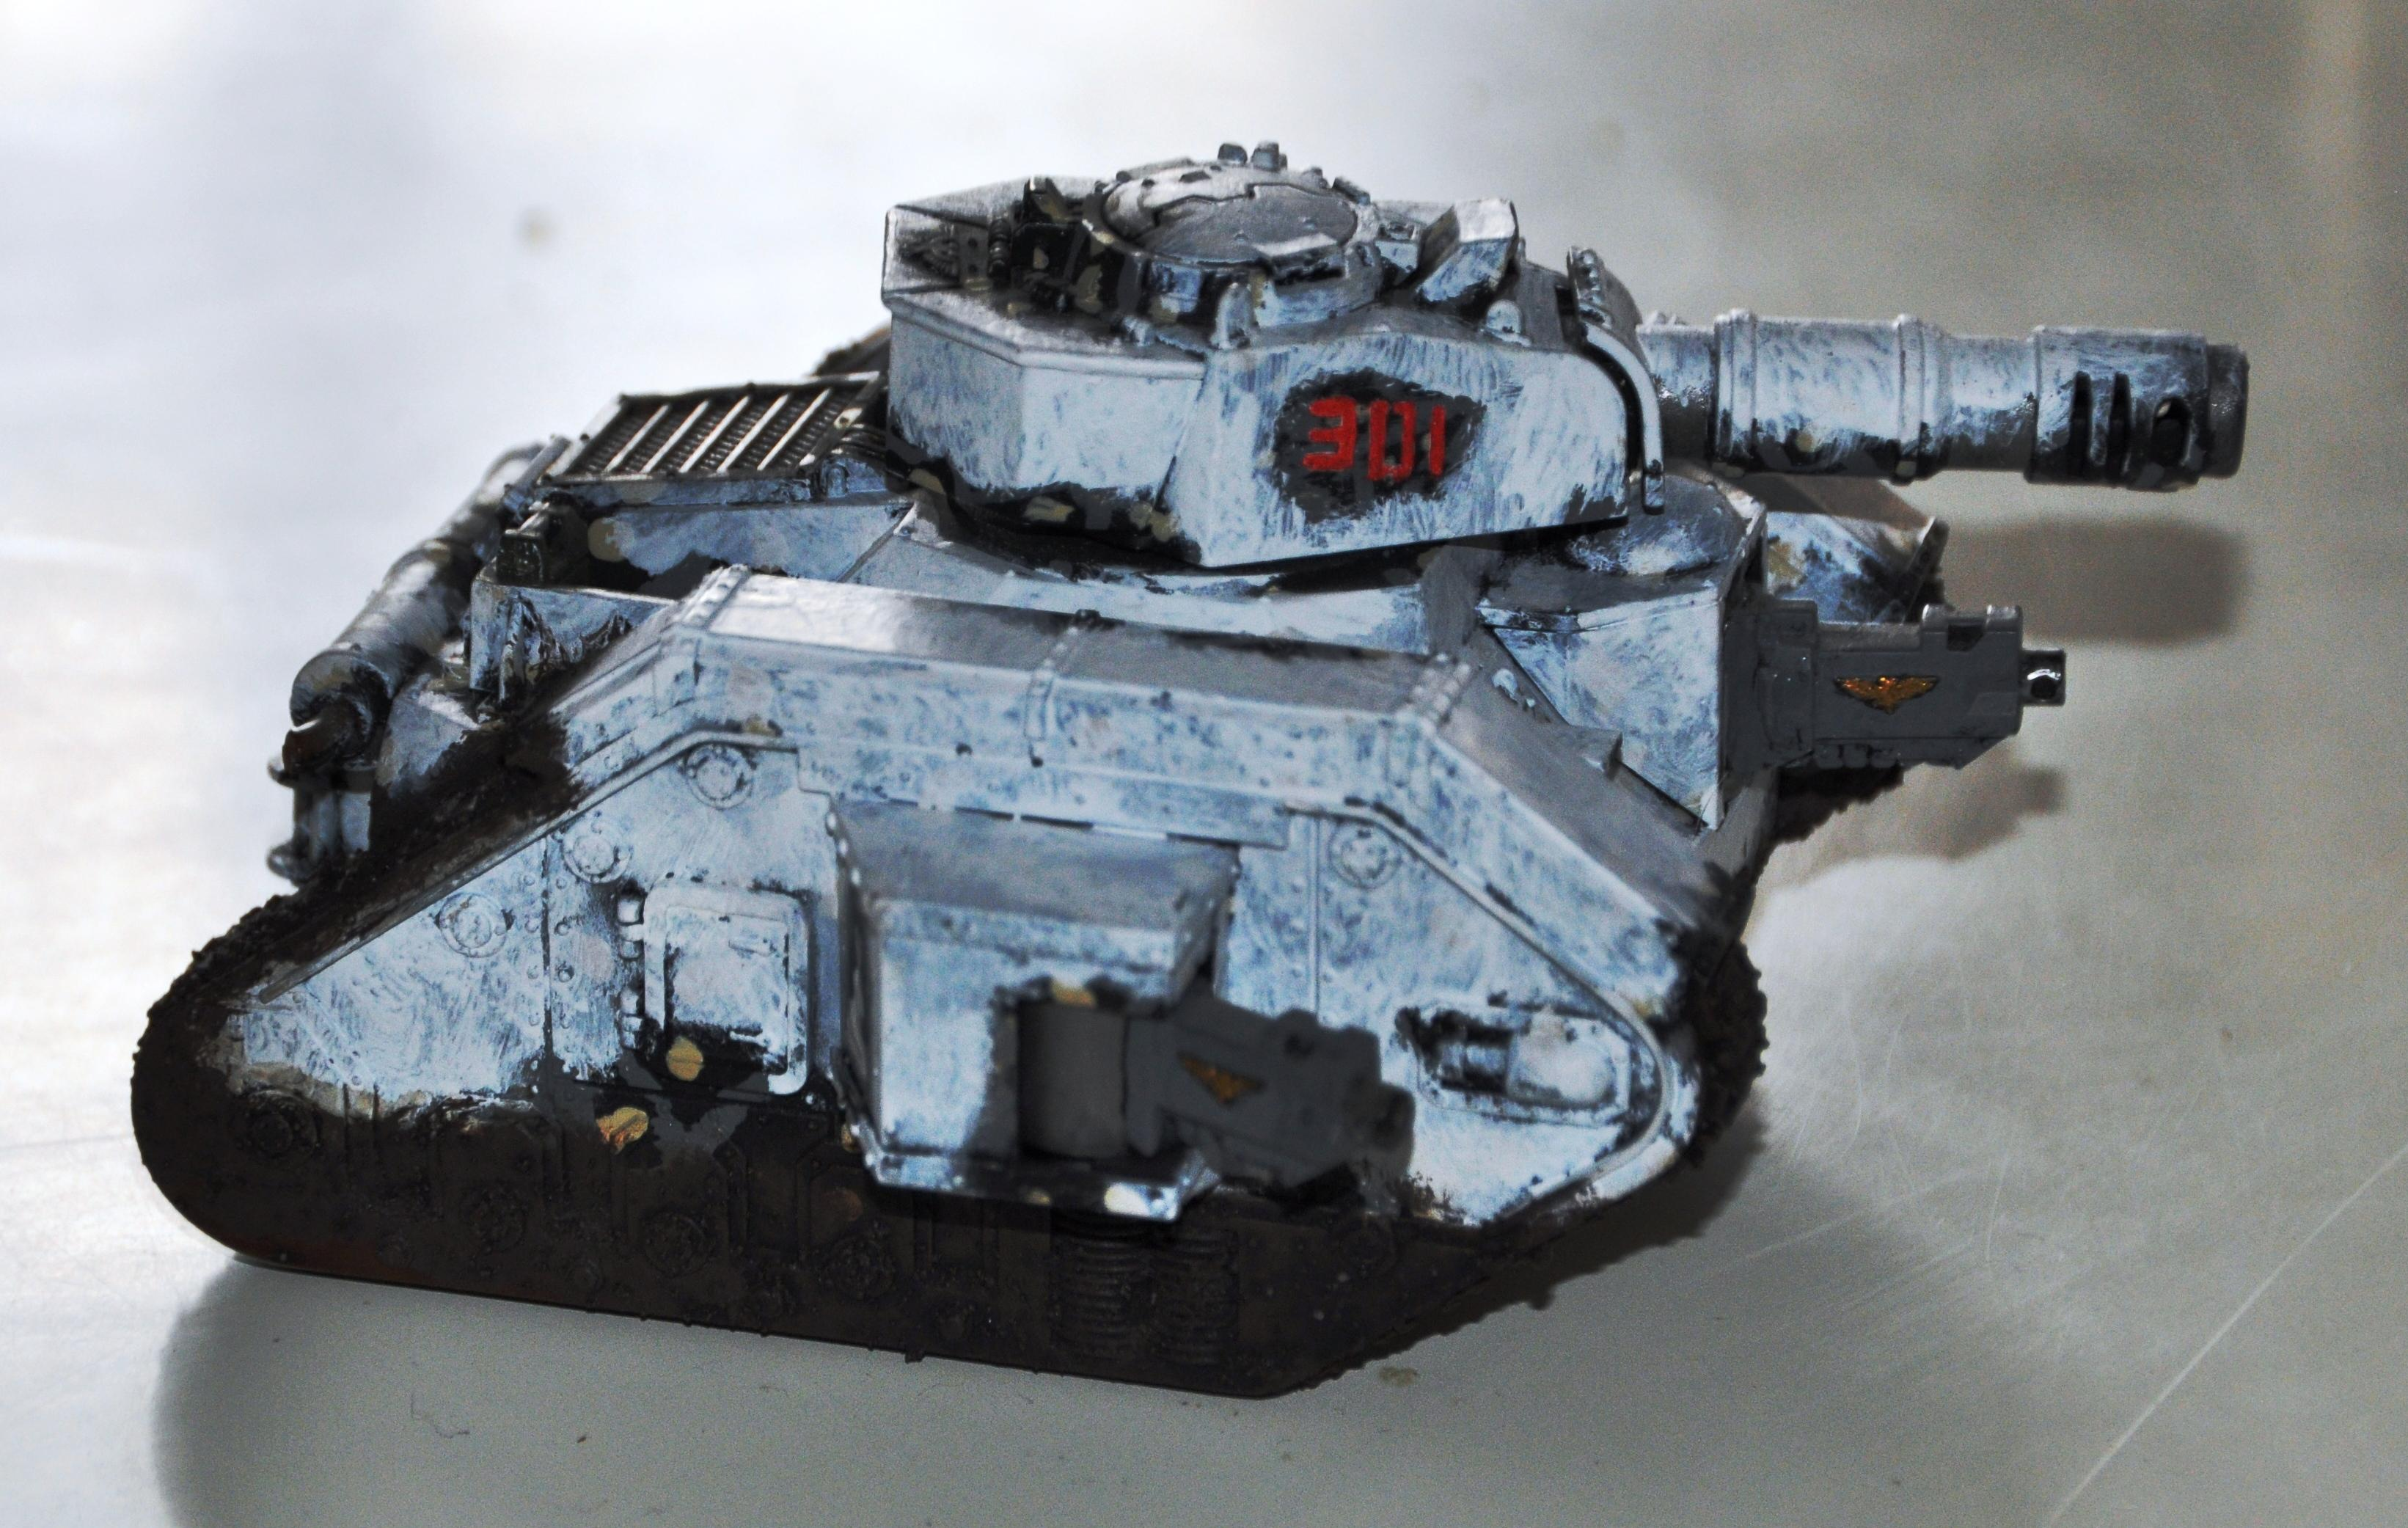 Guard, Imperial, Imperiale Armee, Leman Russ, Snow, Tank, Winter, Winter Imperial Guard Snow